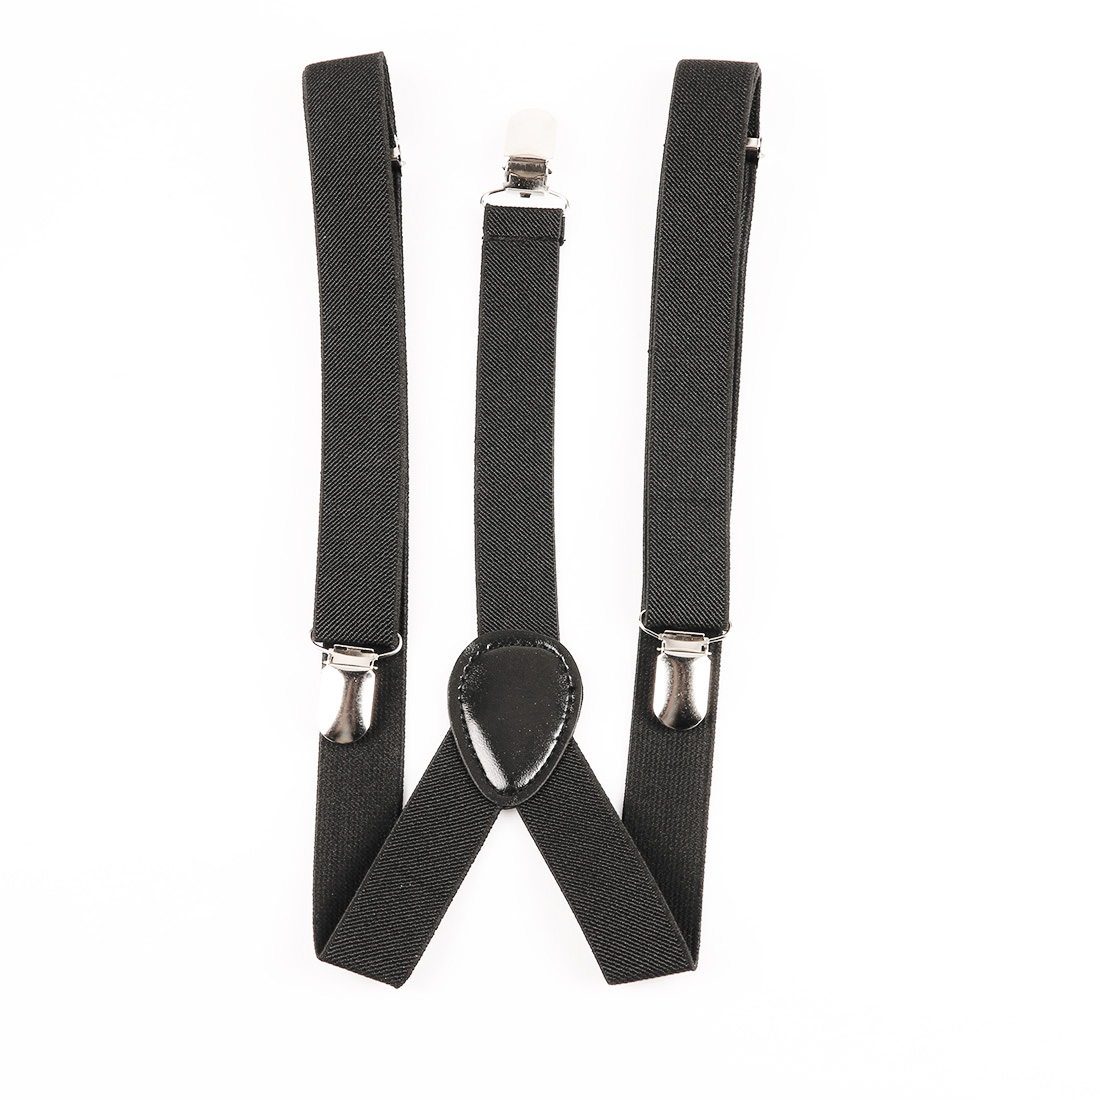 New Style Black Mens Womens Unisex Clip-on Suspenders Elastic Y-Shape Adjustable Braces Solids 25*100cm Colorful